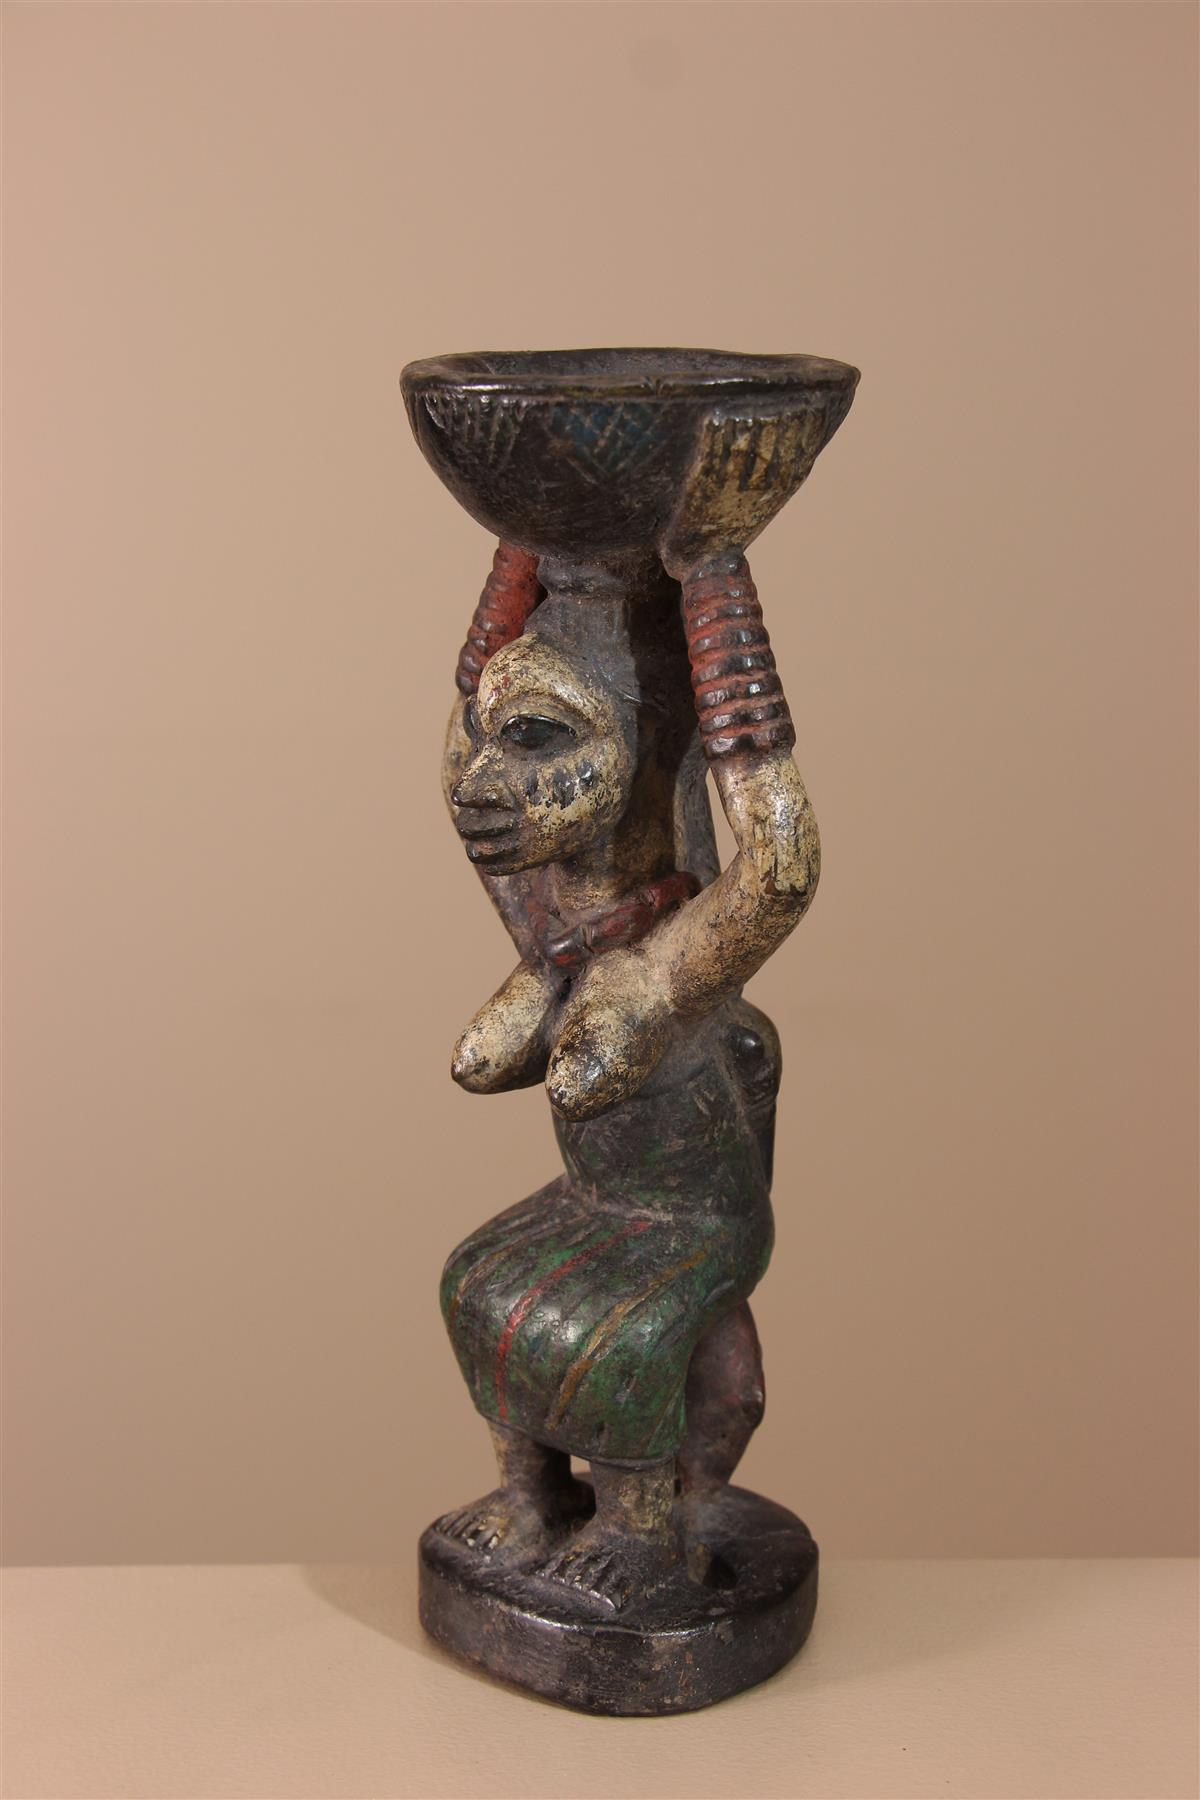 Statuette Yoruba - Déco africaine - Art africain traditionnel